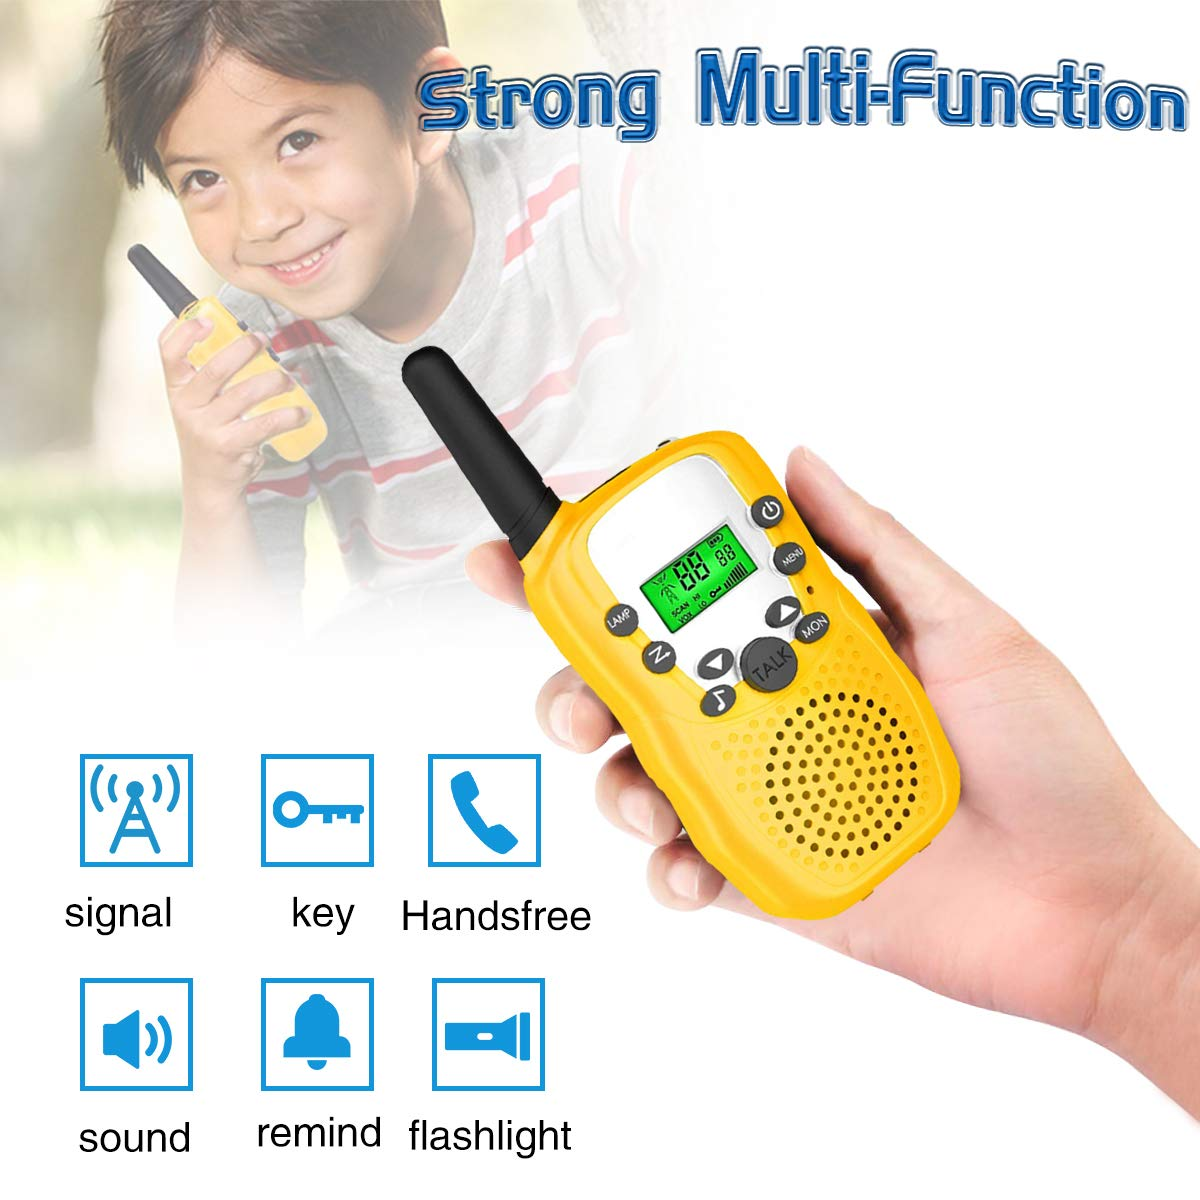 Outdoor Toys for 5-10 Year Old Boys Girls Pussan Kids Walkie Talkies 3 Pack Long Range 2 Miles 22 Channels Kids Camping Outside Summer Games Walky Talky for Children Gifts by Pussan (Image #4)